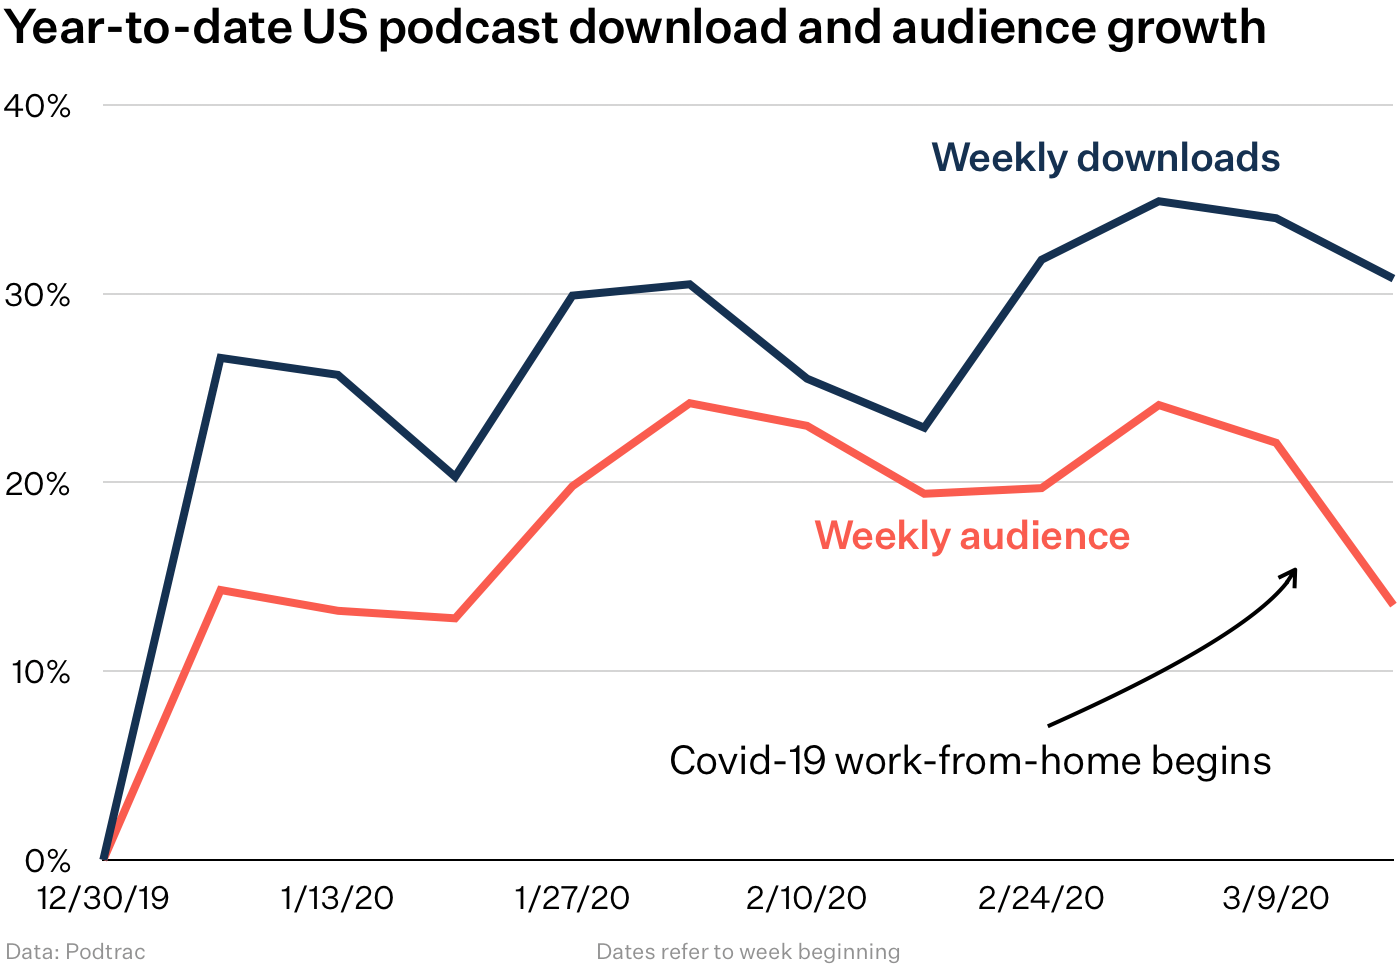 Year-to-date US podcast download and audience growth chart